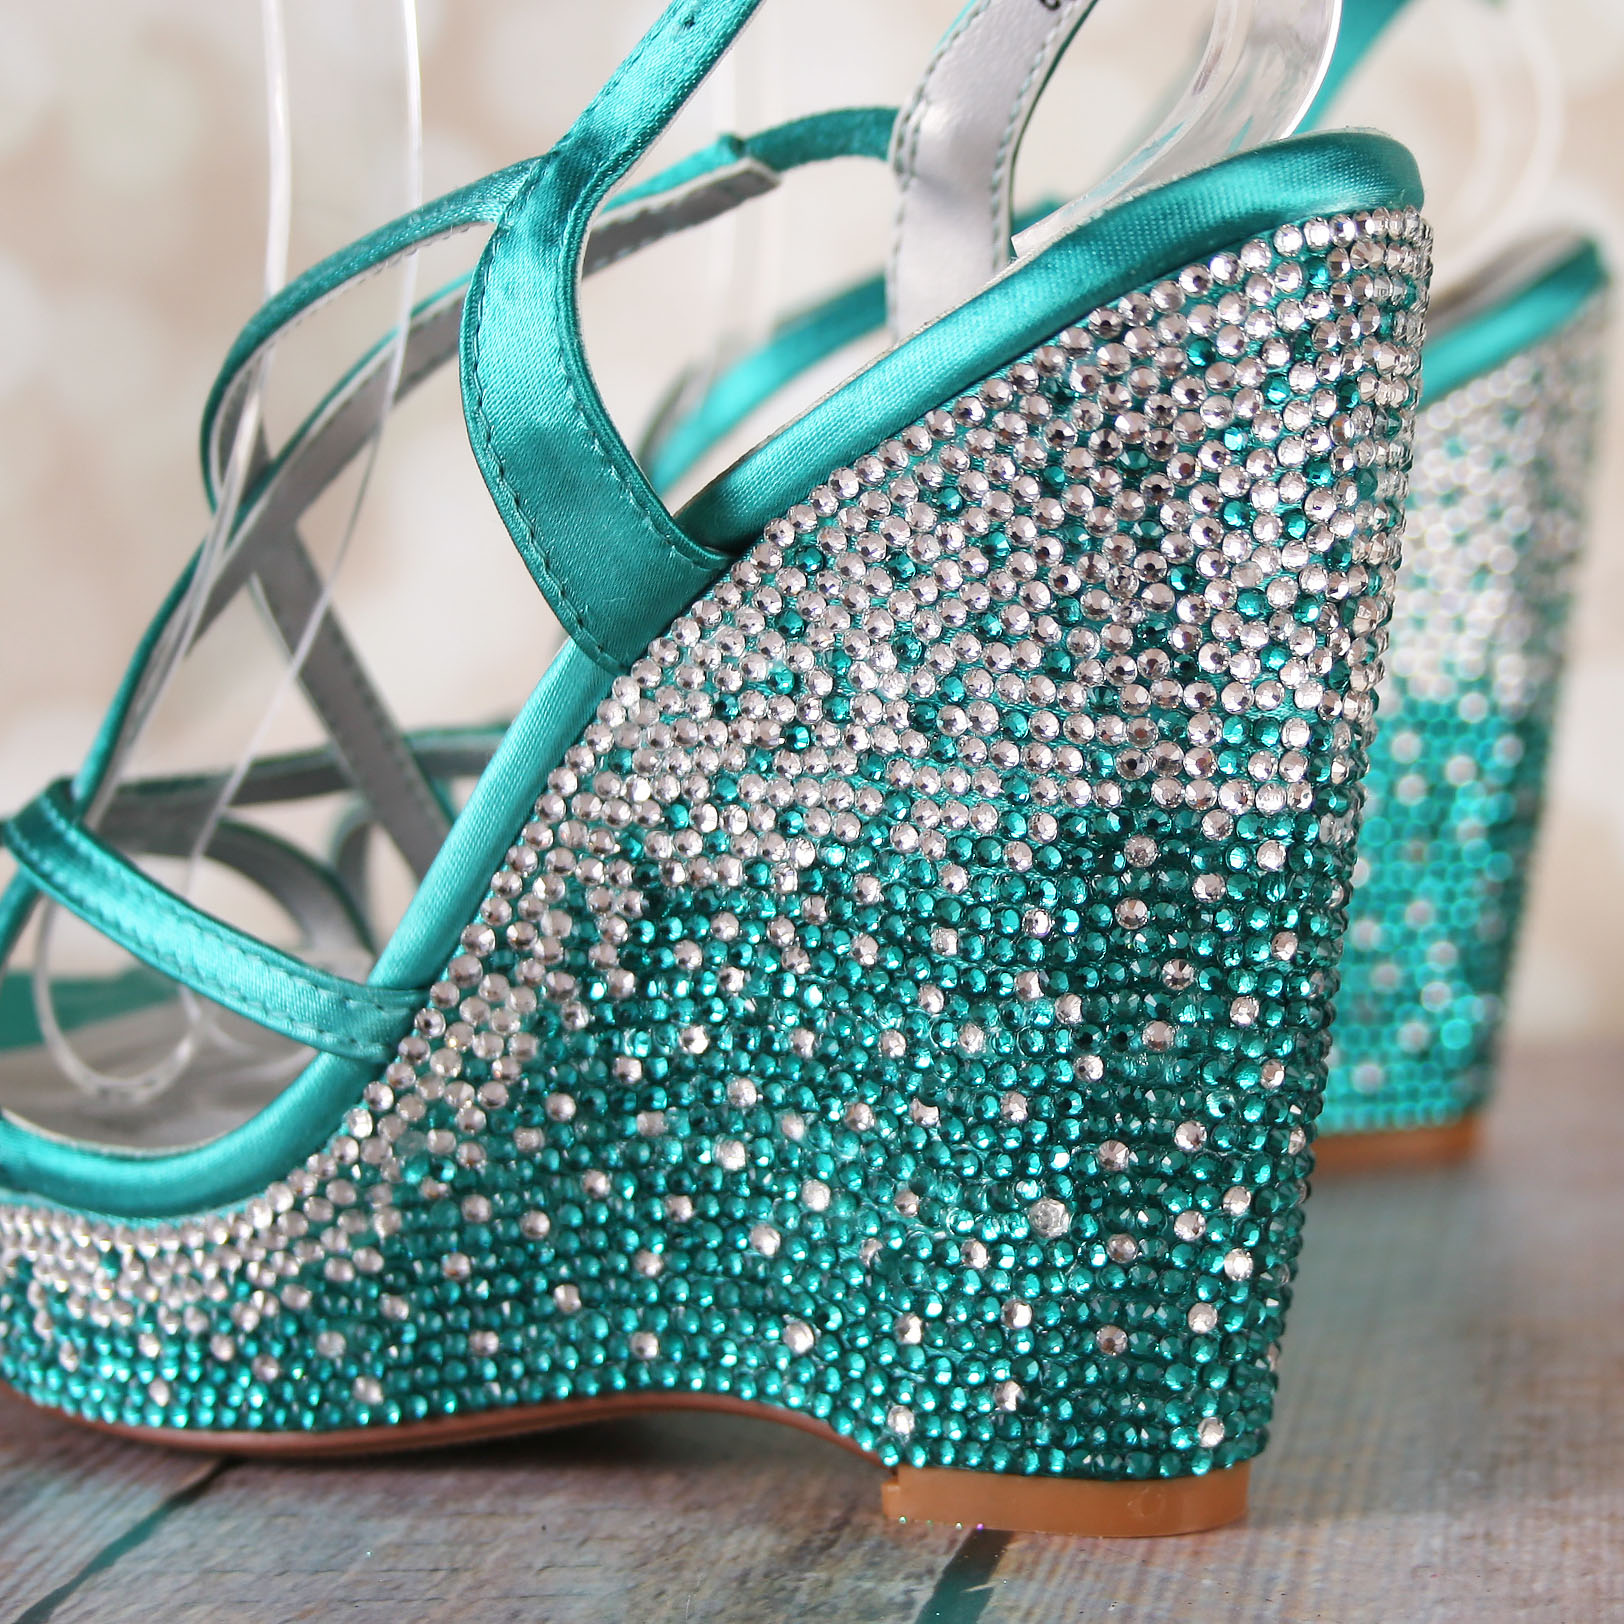 Something Blue Wedge Wedding Shoes with Sparkly Crystal Ombre Crystal Wedge Heel Custom Wedding Shoes by Ellie Wren